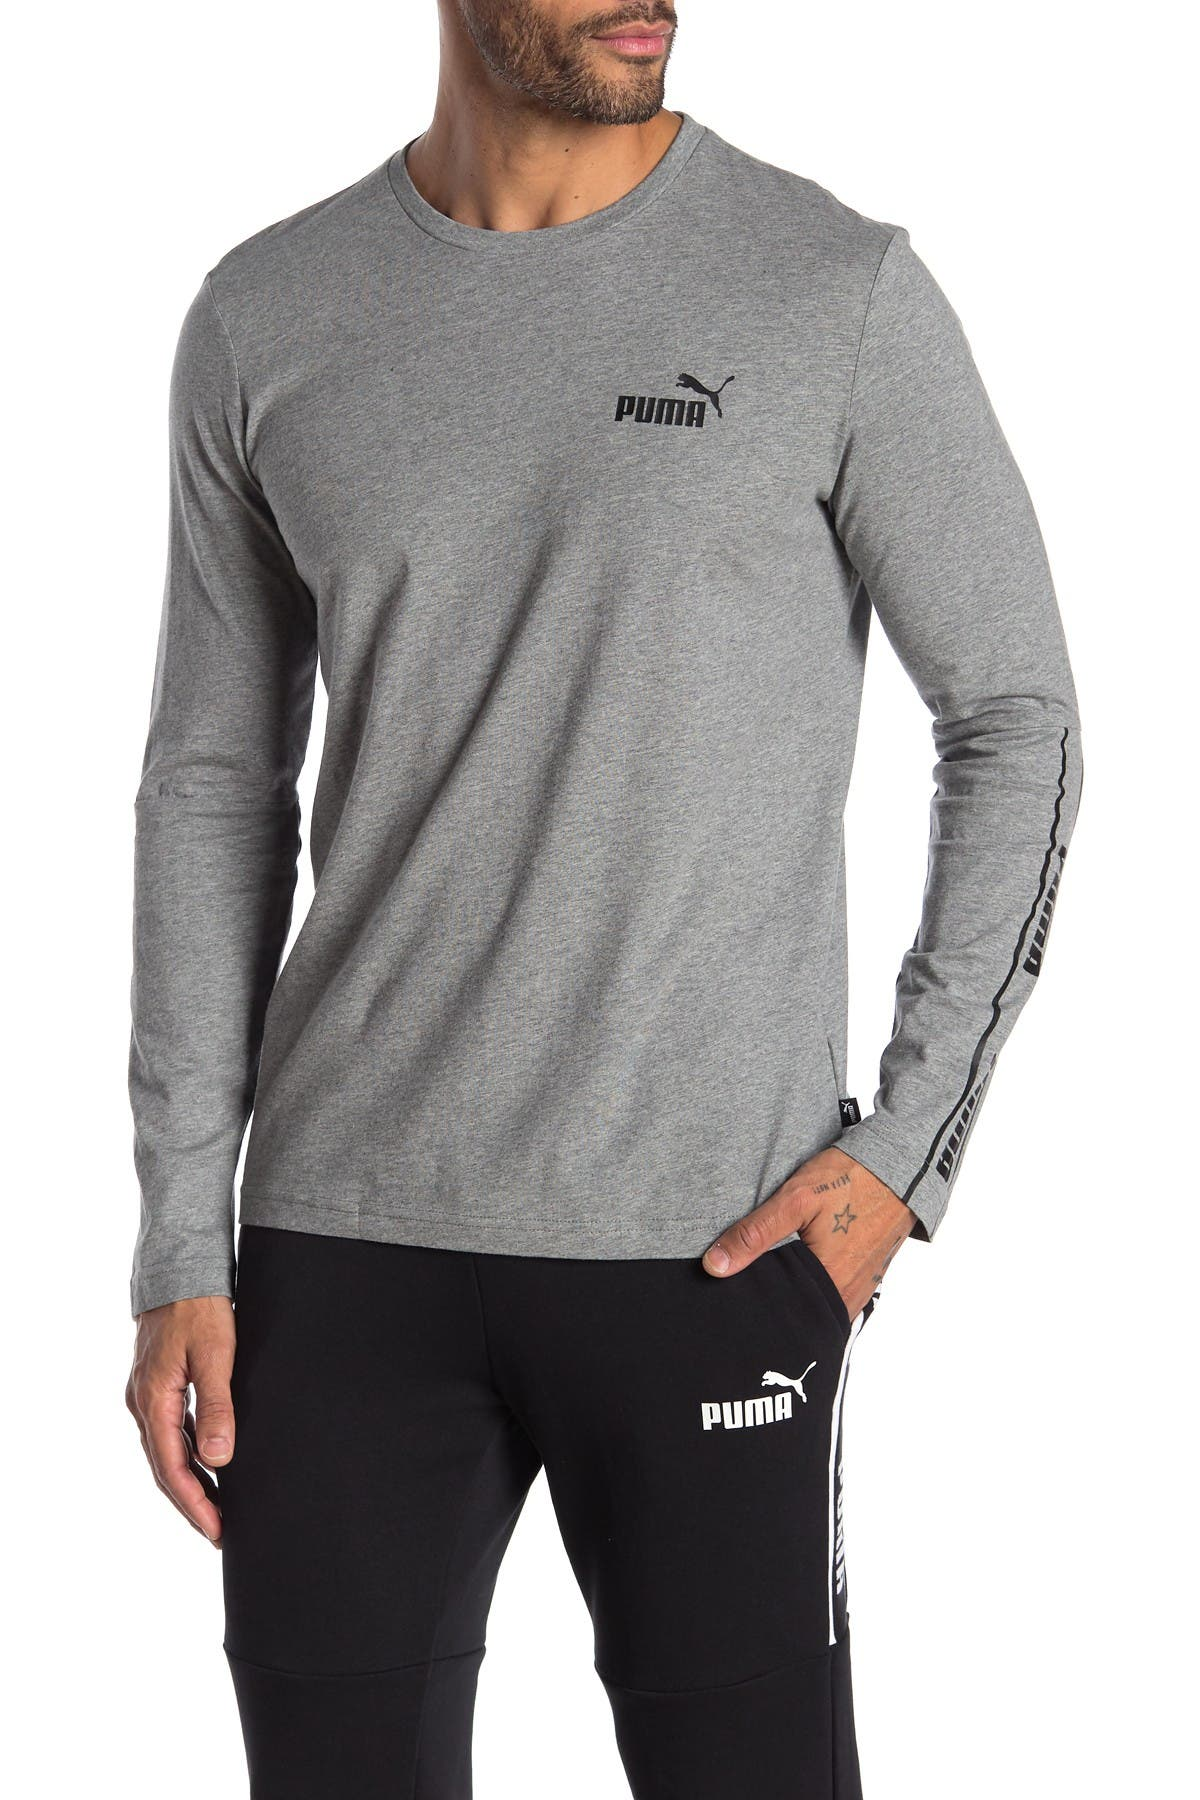 Image of PUMA Amplified Logo Long Sleeve T-Shirt